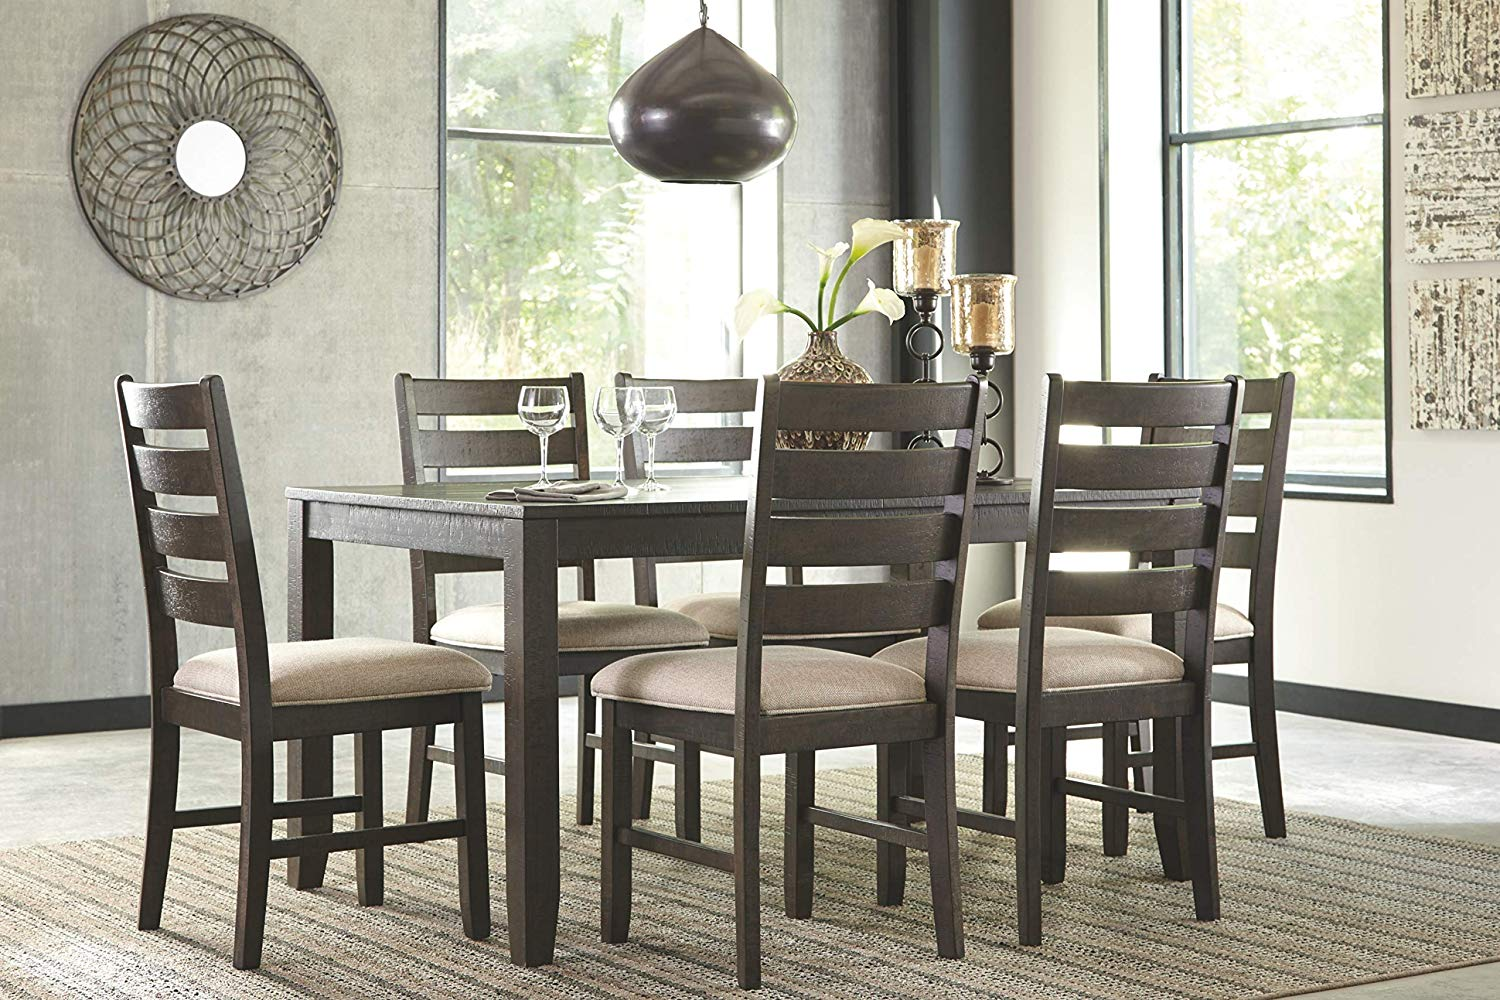 Signature Design by Ashley Industrial Dining